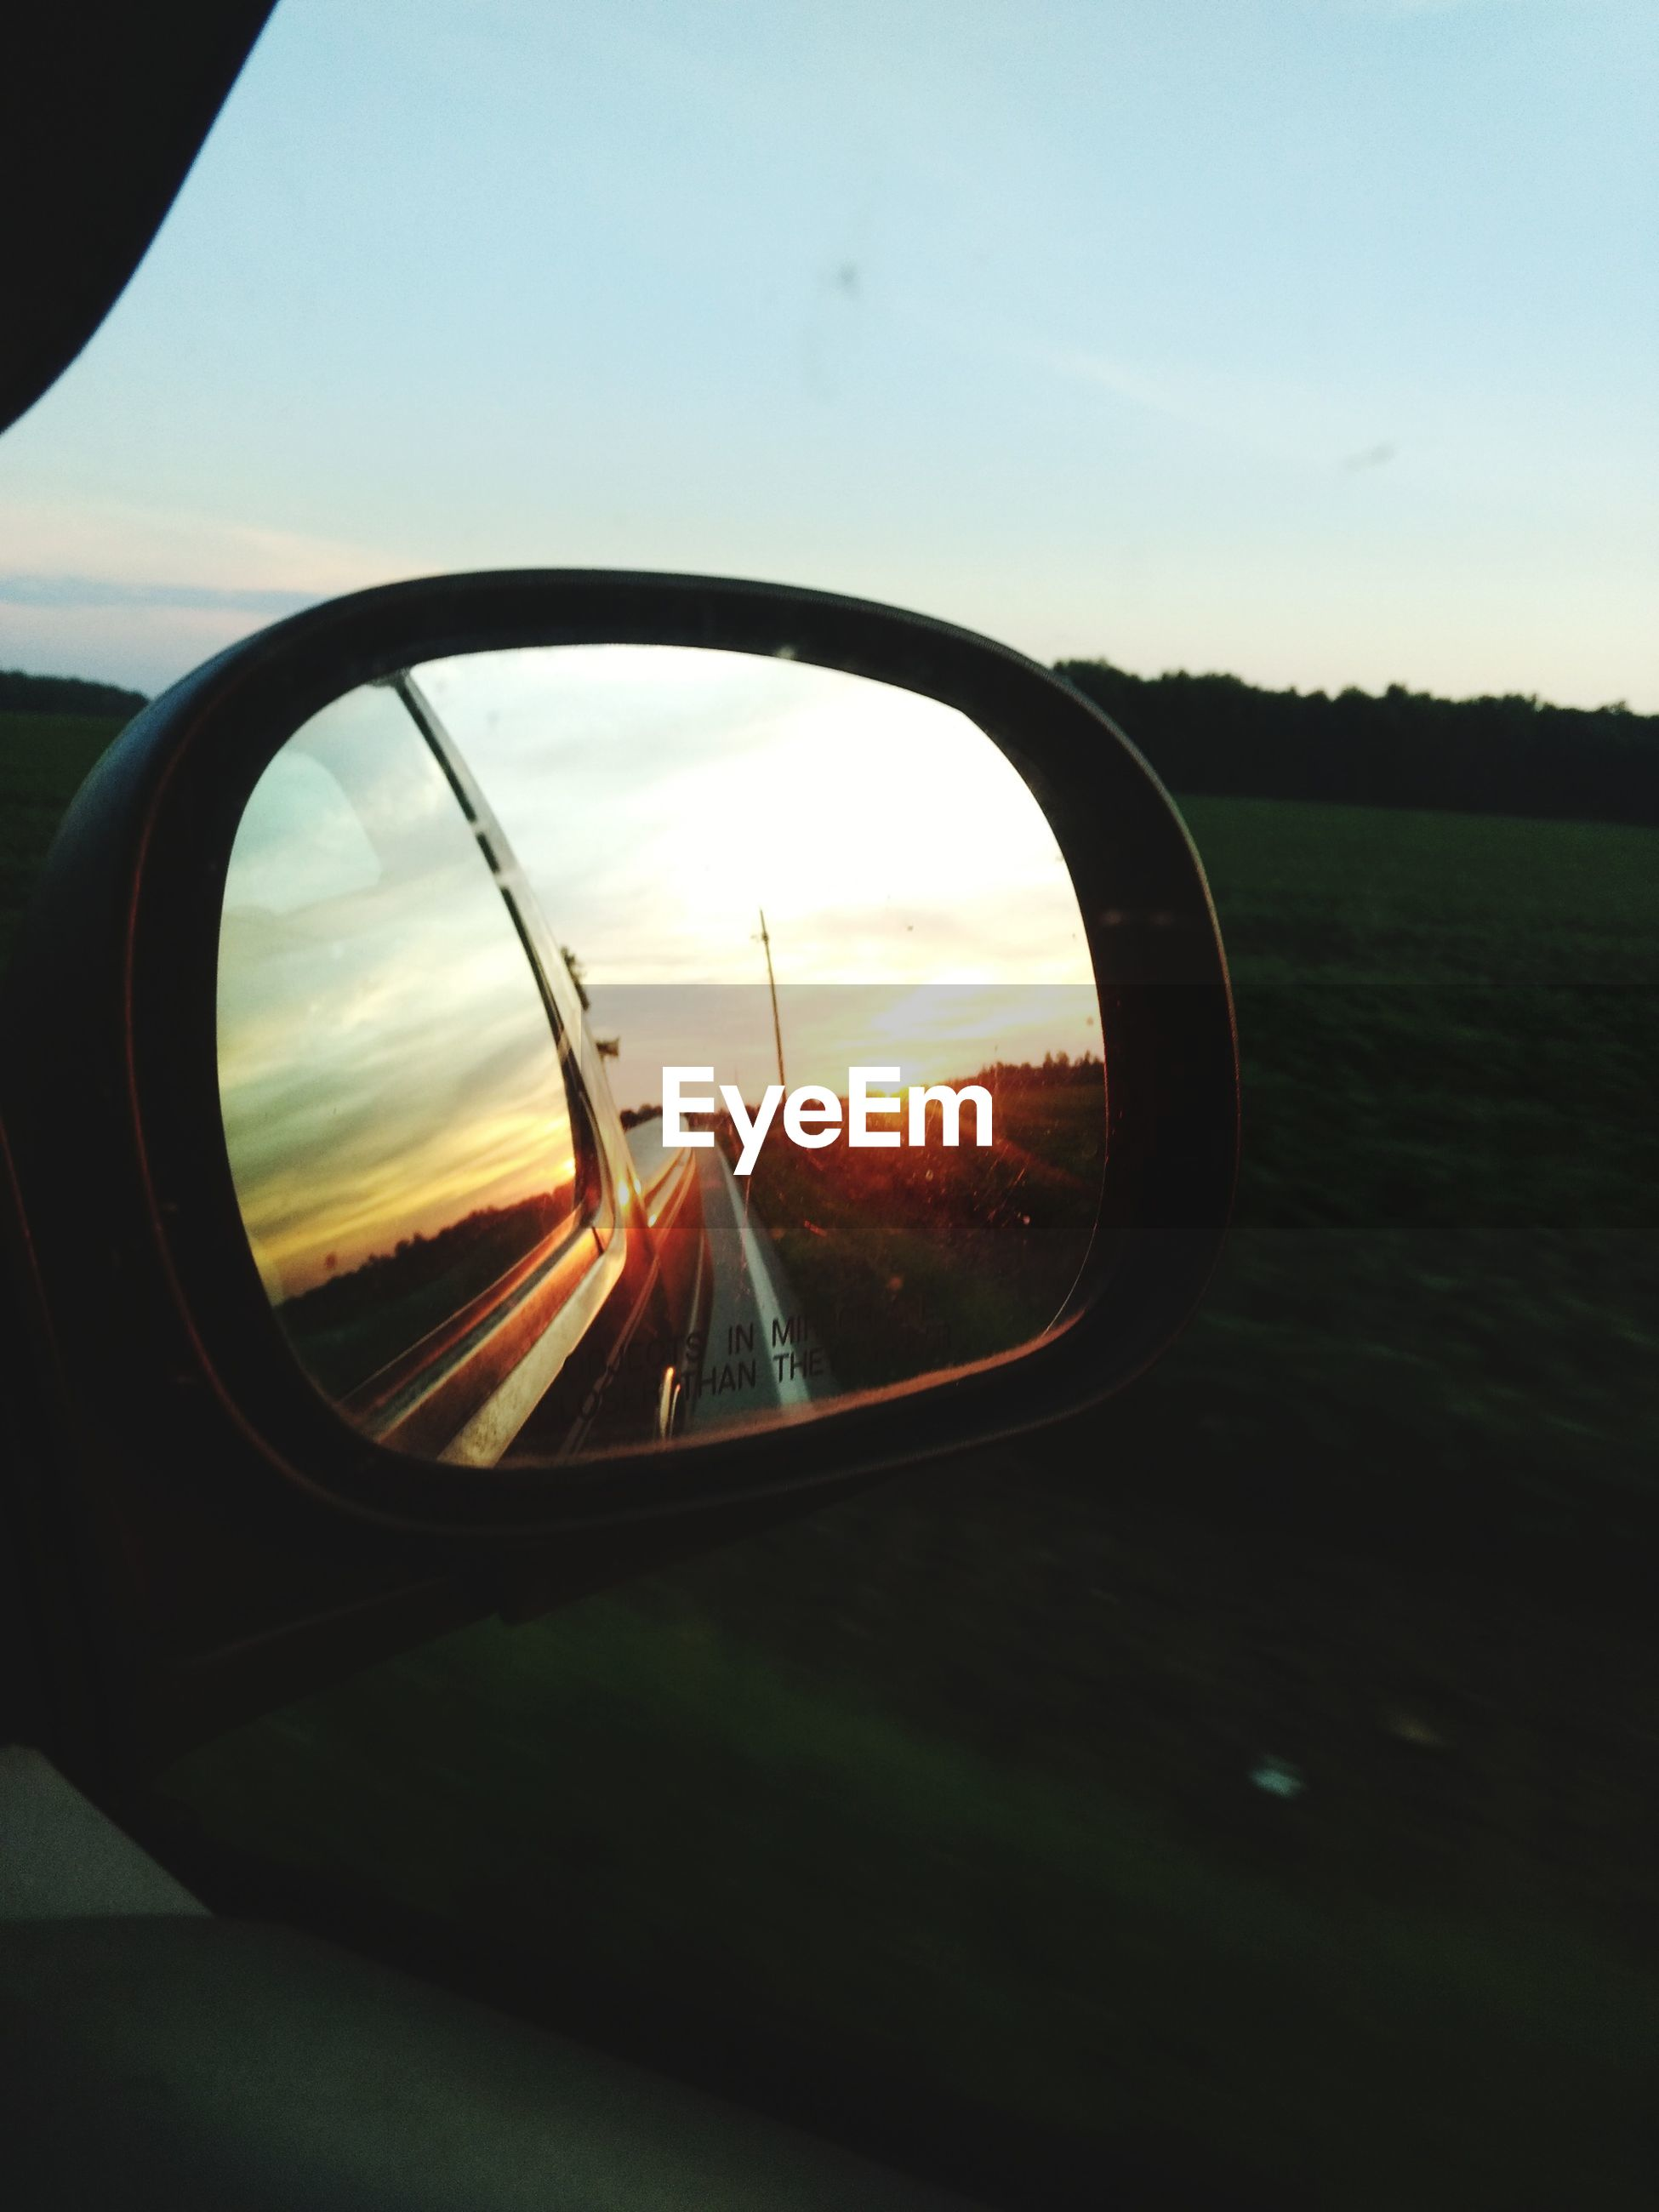 CLOSE-UP OF SIDE-VIEW MIRROR AGAINST SUNSET